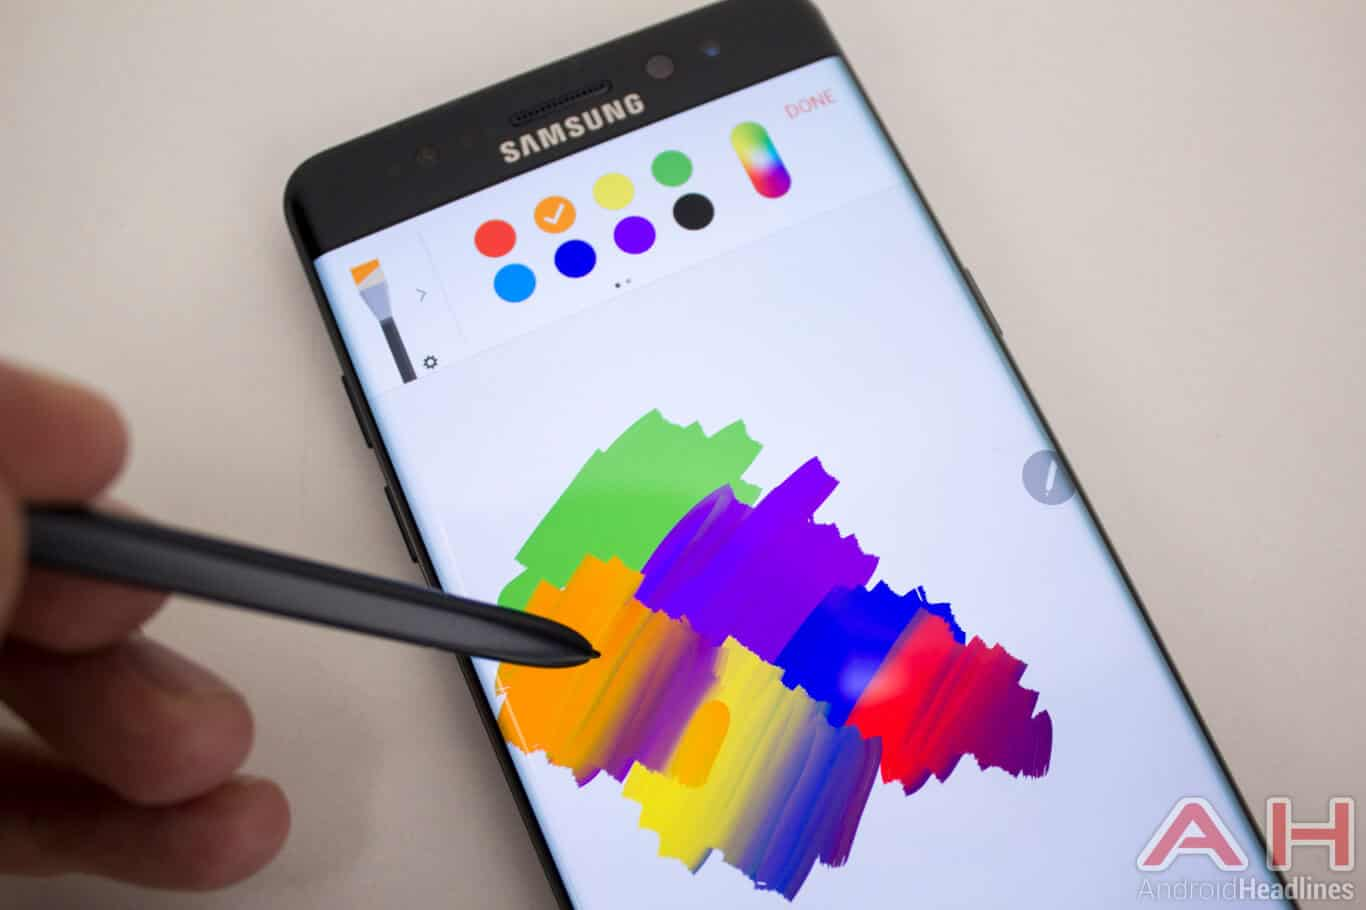 Samsung-Galaxy-Note-7-AH-NS-01-s-pen-art-02